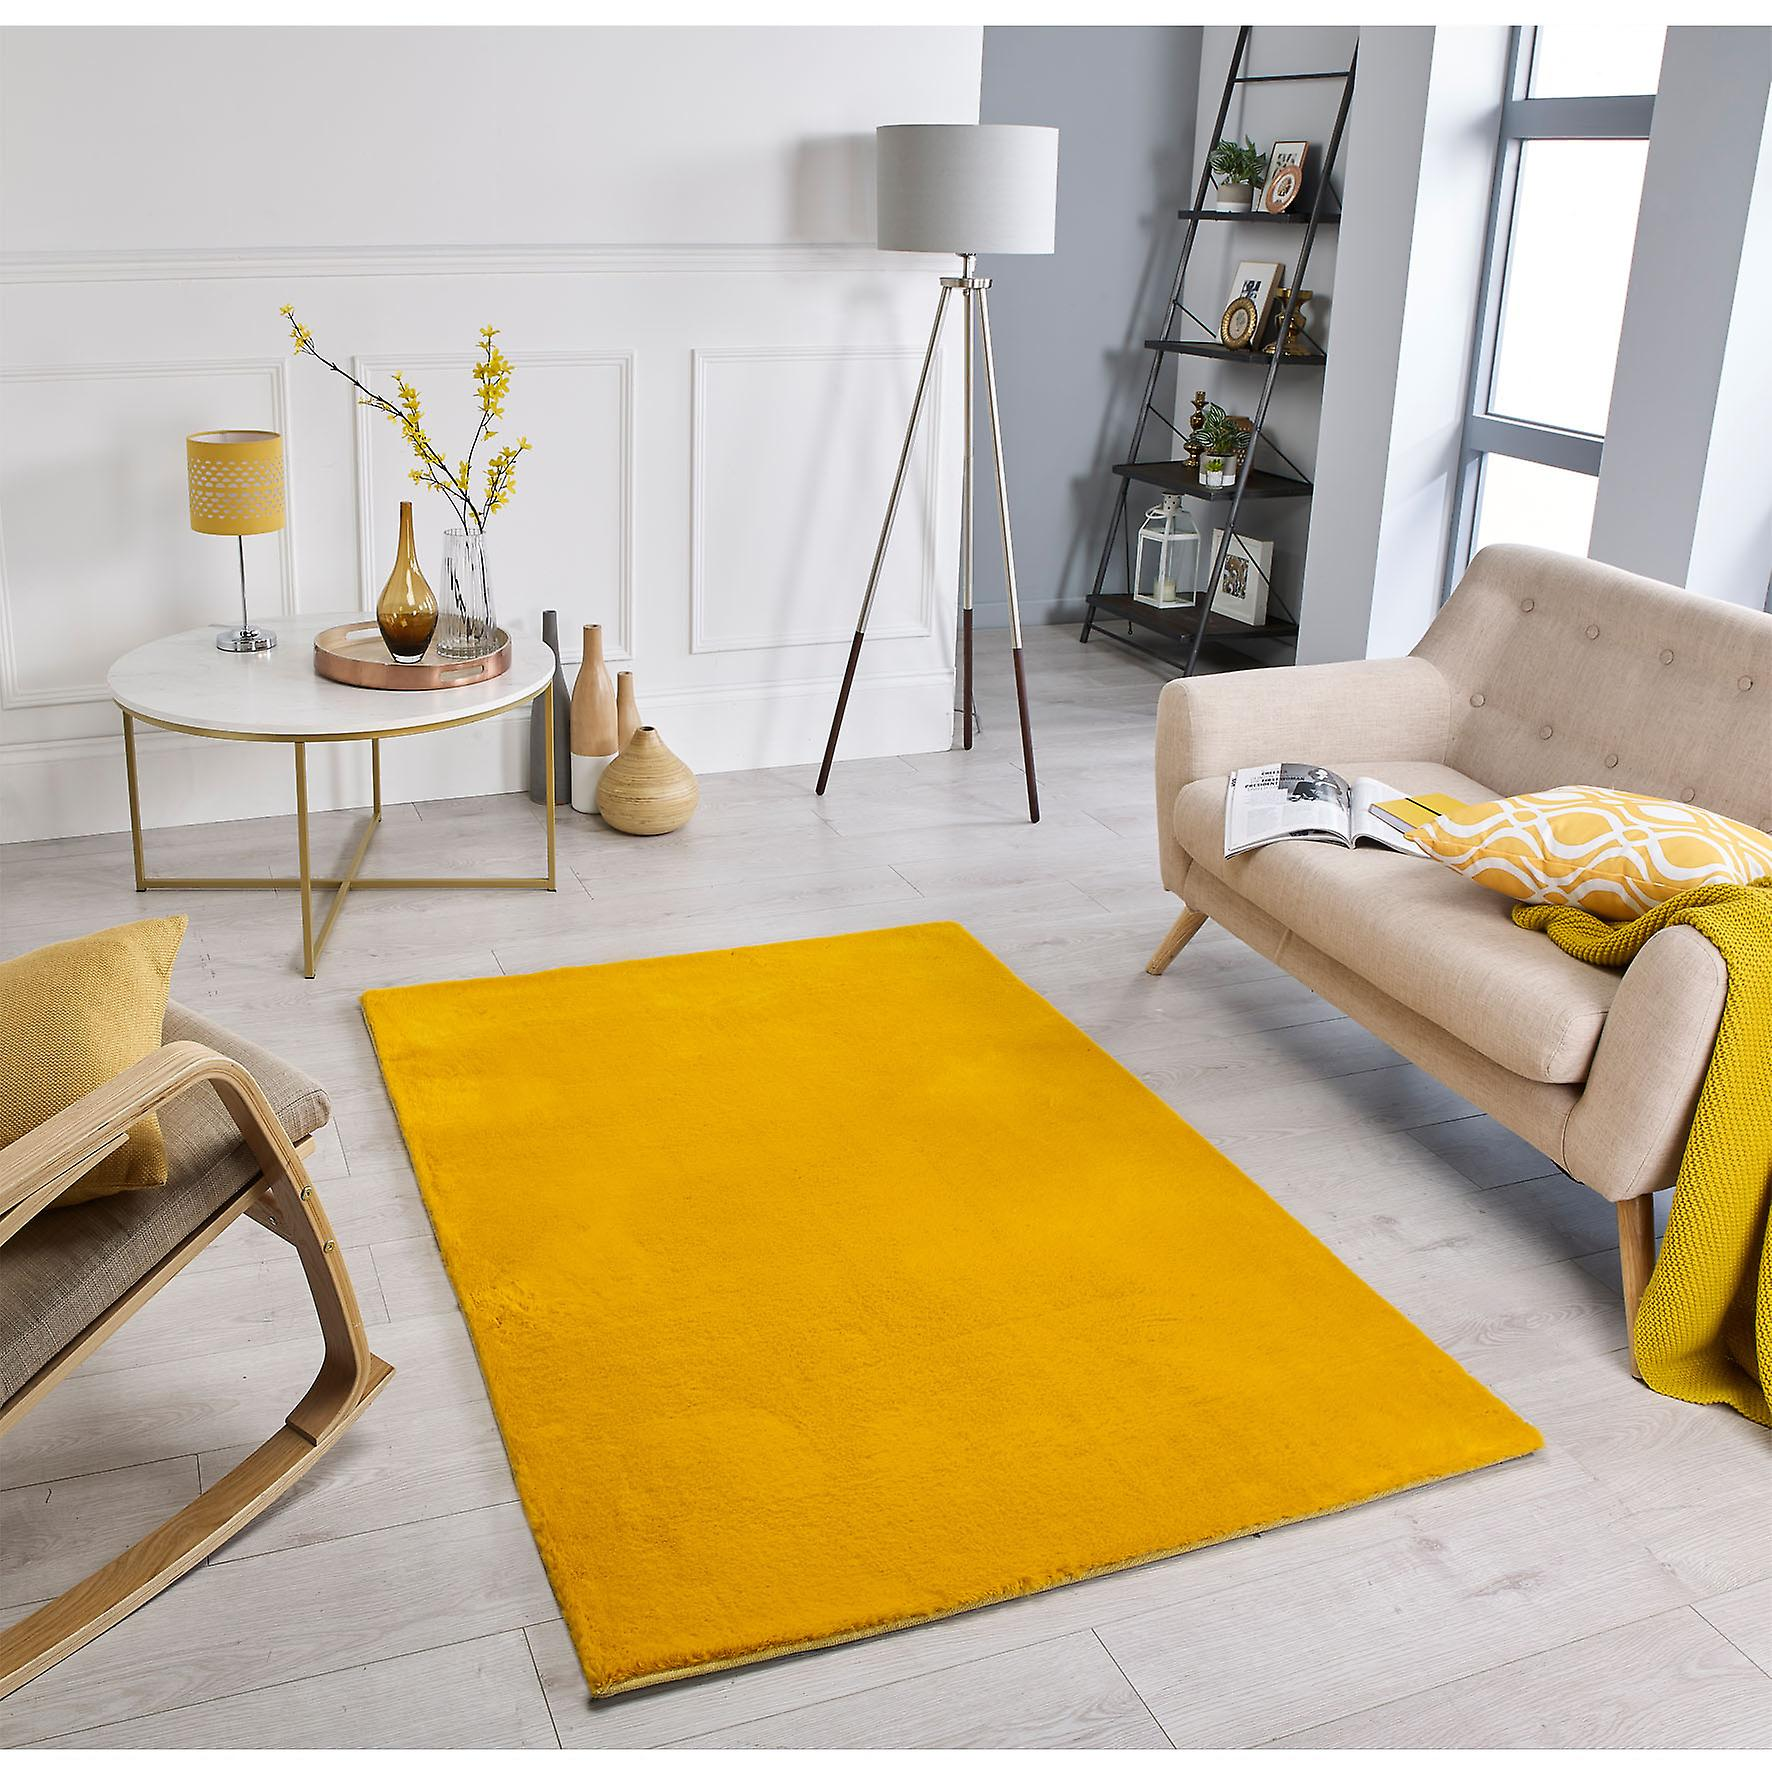 Comfy Mustard Rectangle Rugs Plaine   Presque Plaine Rugs